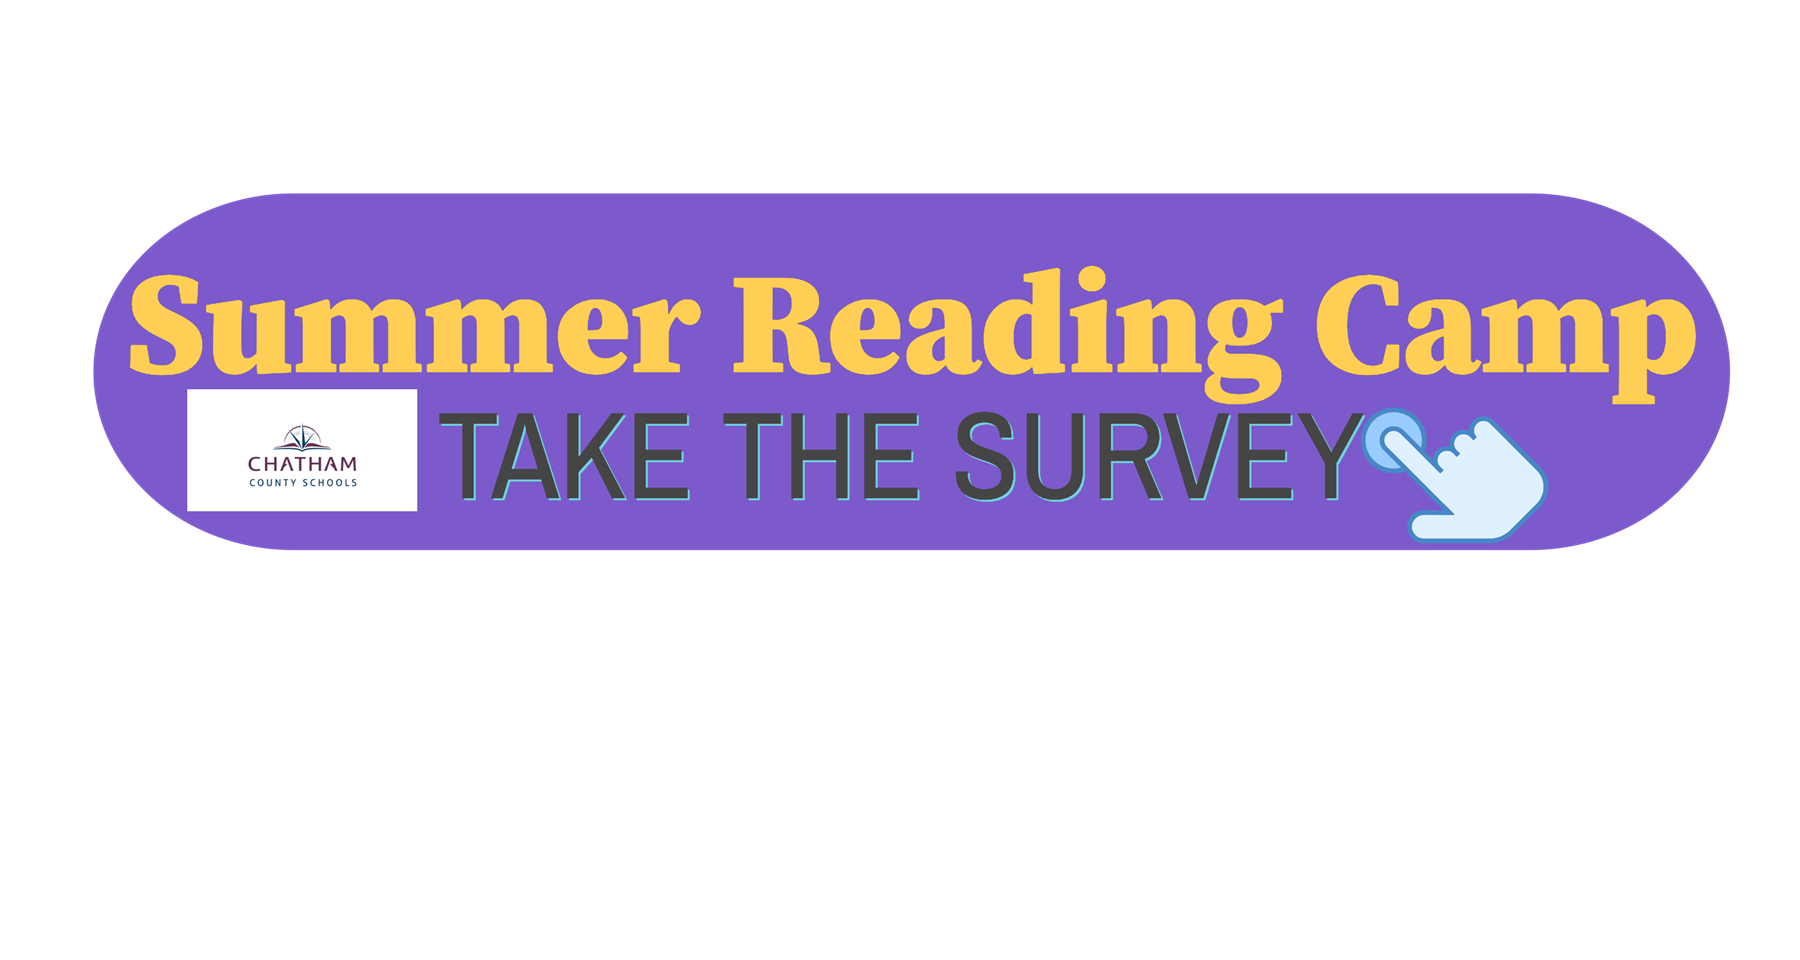 Take the Summer Reading Camp survey